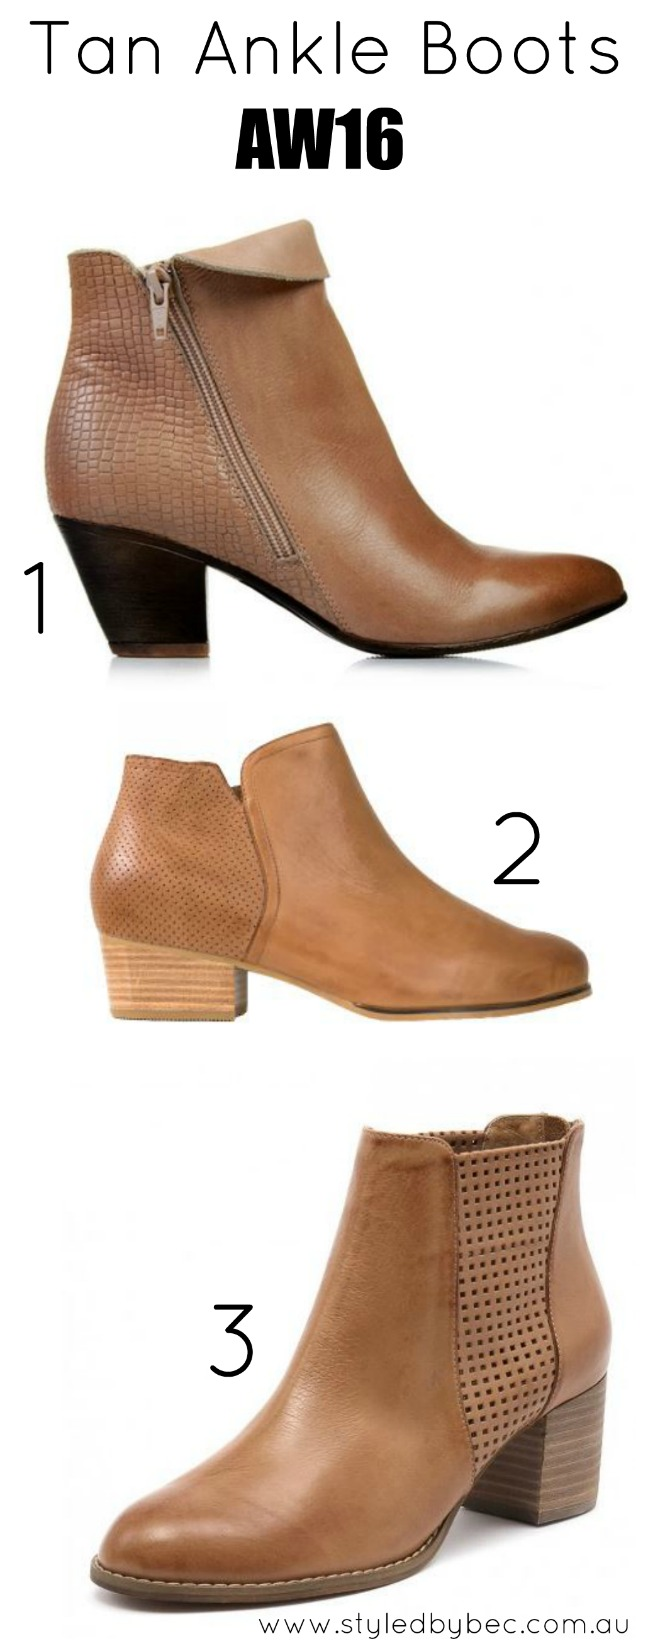 tan ankle boots 2017